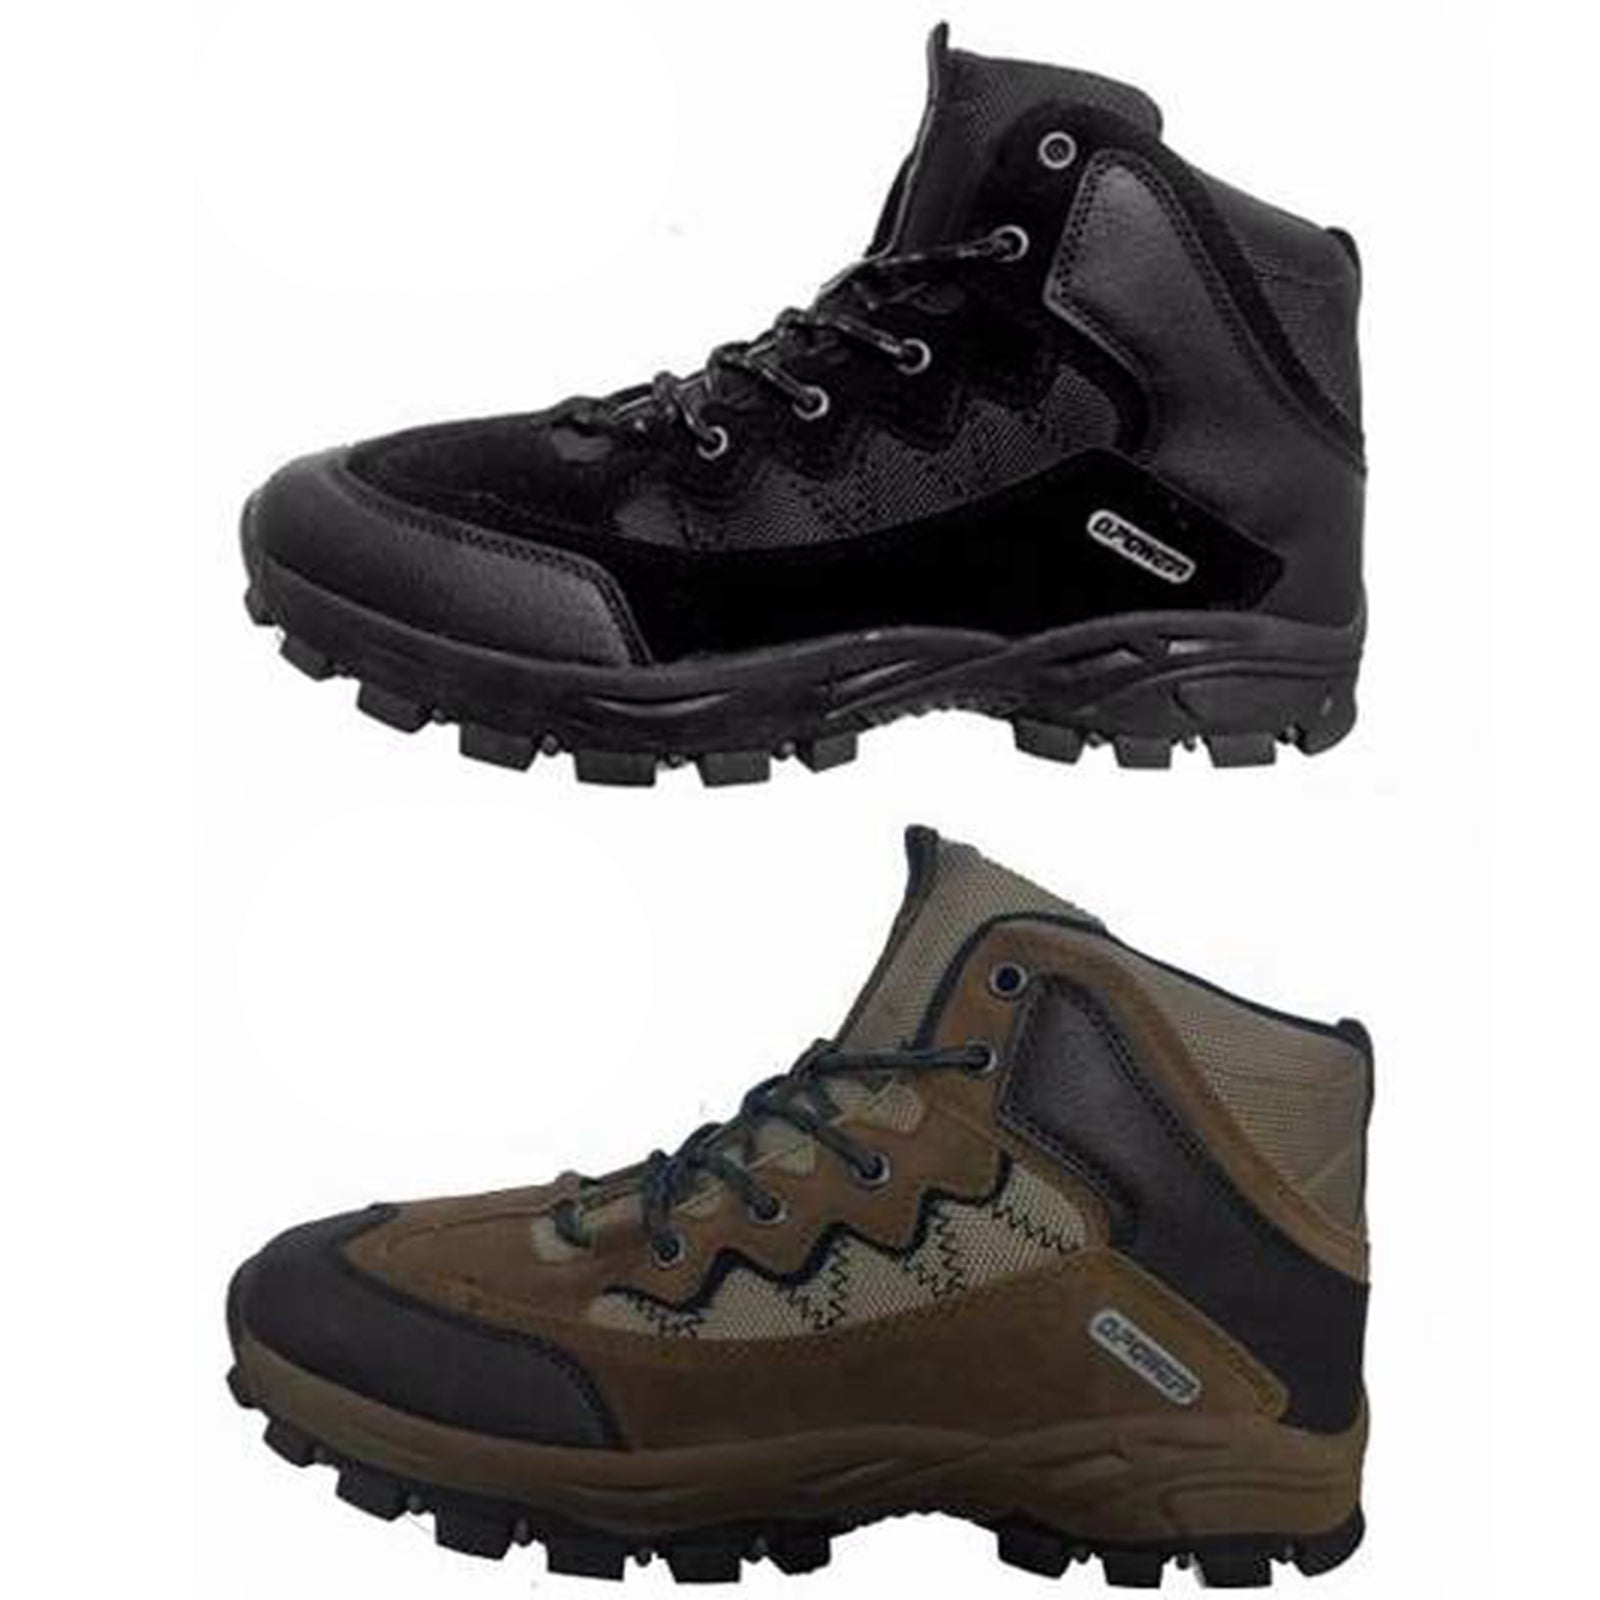 Wholesale Men's Shoes Hiking Work Lace Up Boots NCP17